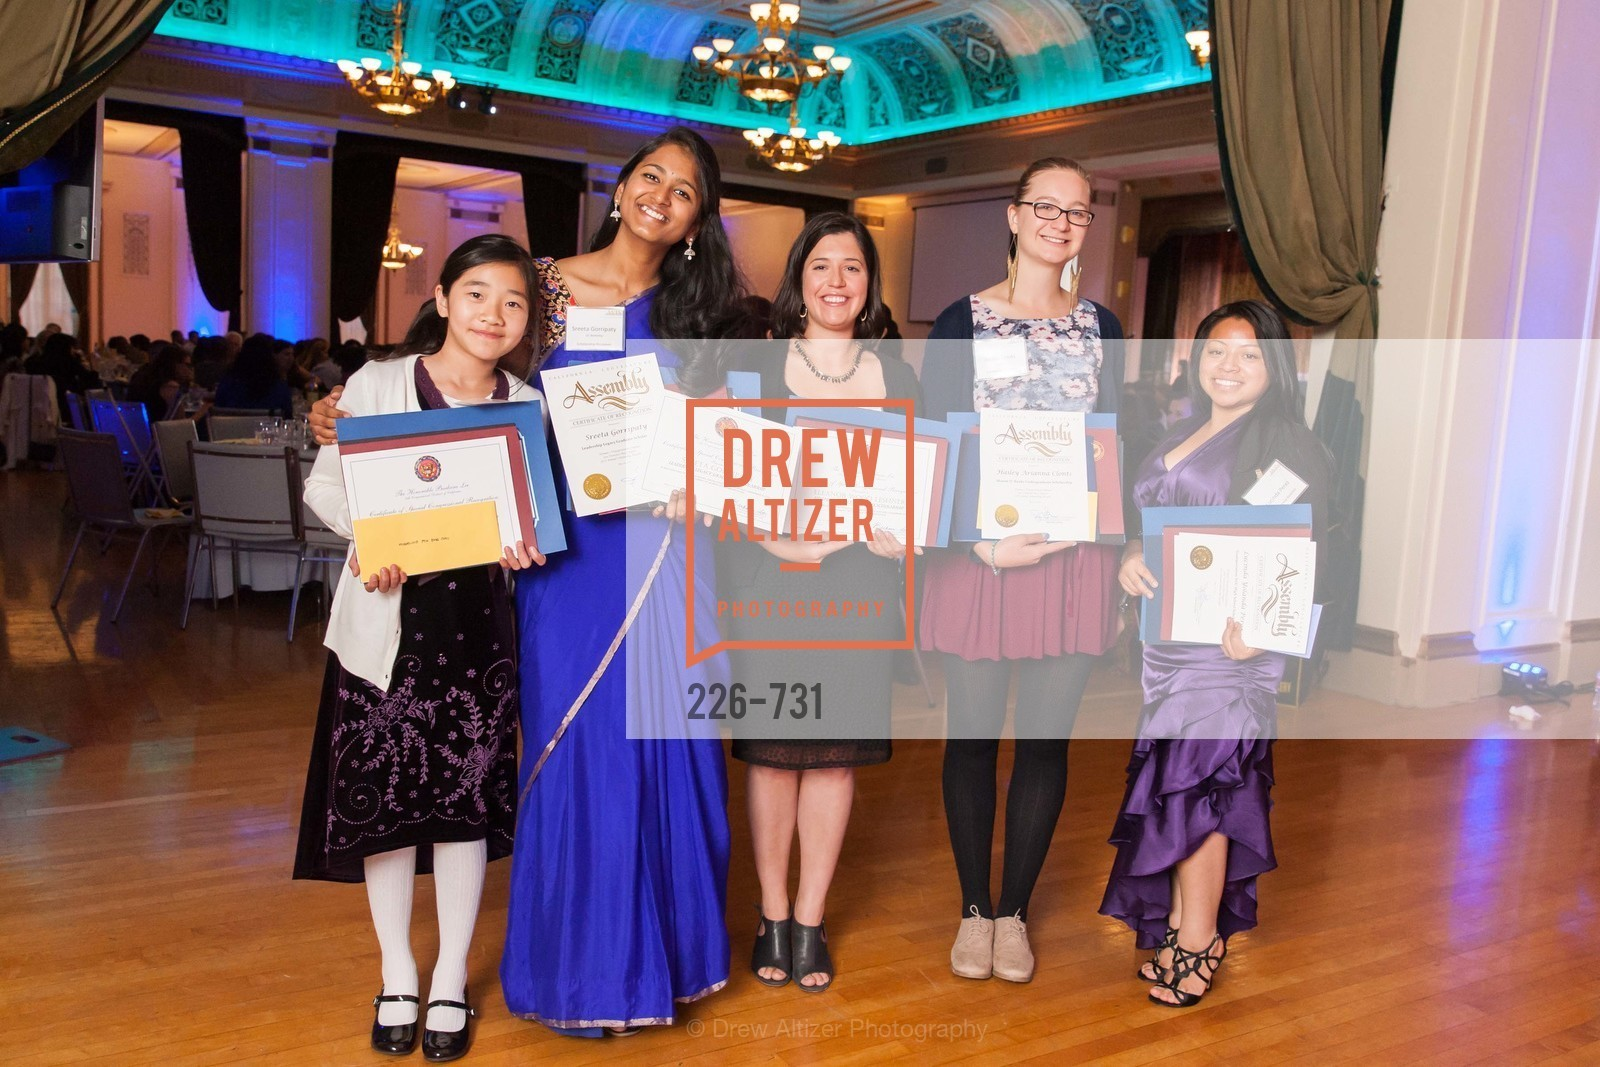 Audrey Choi, Sreeta Gorripaty, Eleanor Leshner, Hailey Clont, Lucinda Perez, WOMEN'S TRANSPORTATION SEMINAR SF Bay Area Chapter Annual Scholarship Awards, US, May 15th, 2015,Drew Altizer, Drew Altizer Photography, full-service agency, private events, San Francisco photographer, photographer california